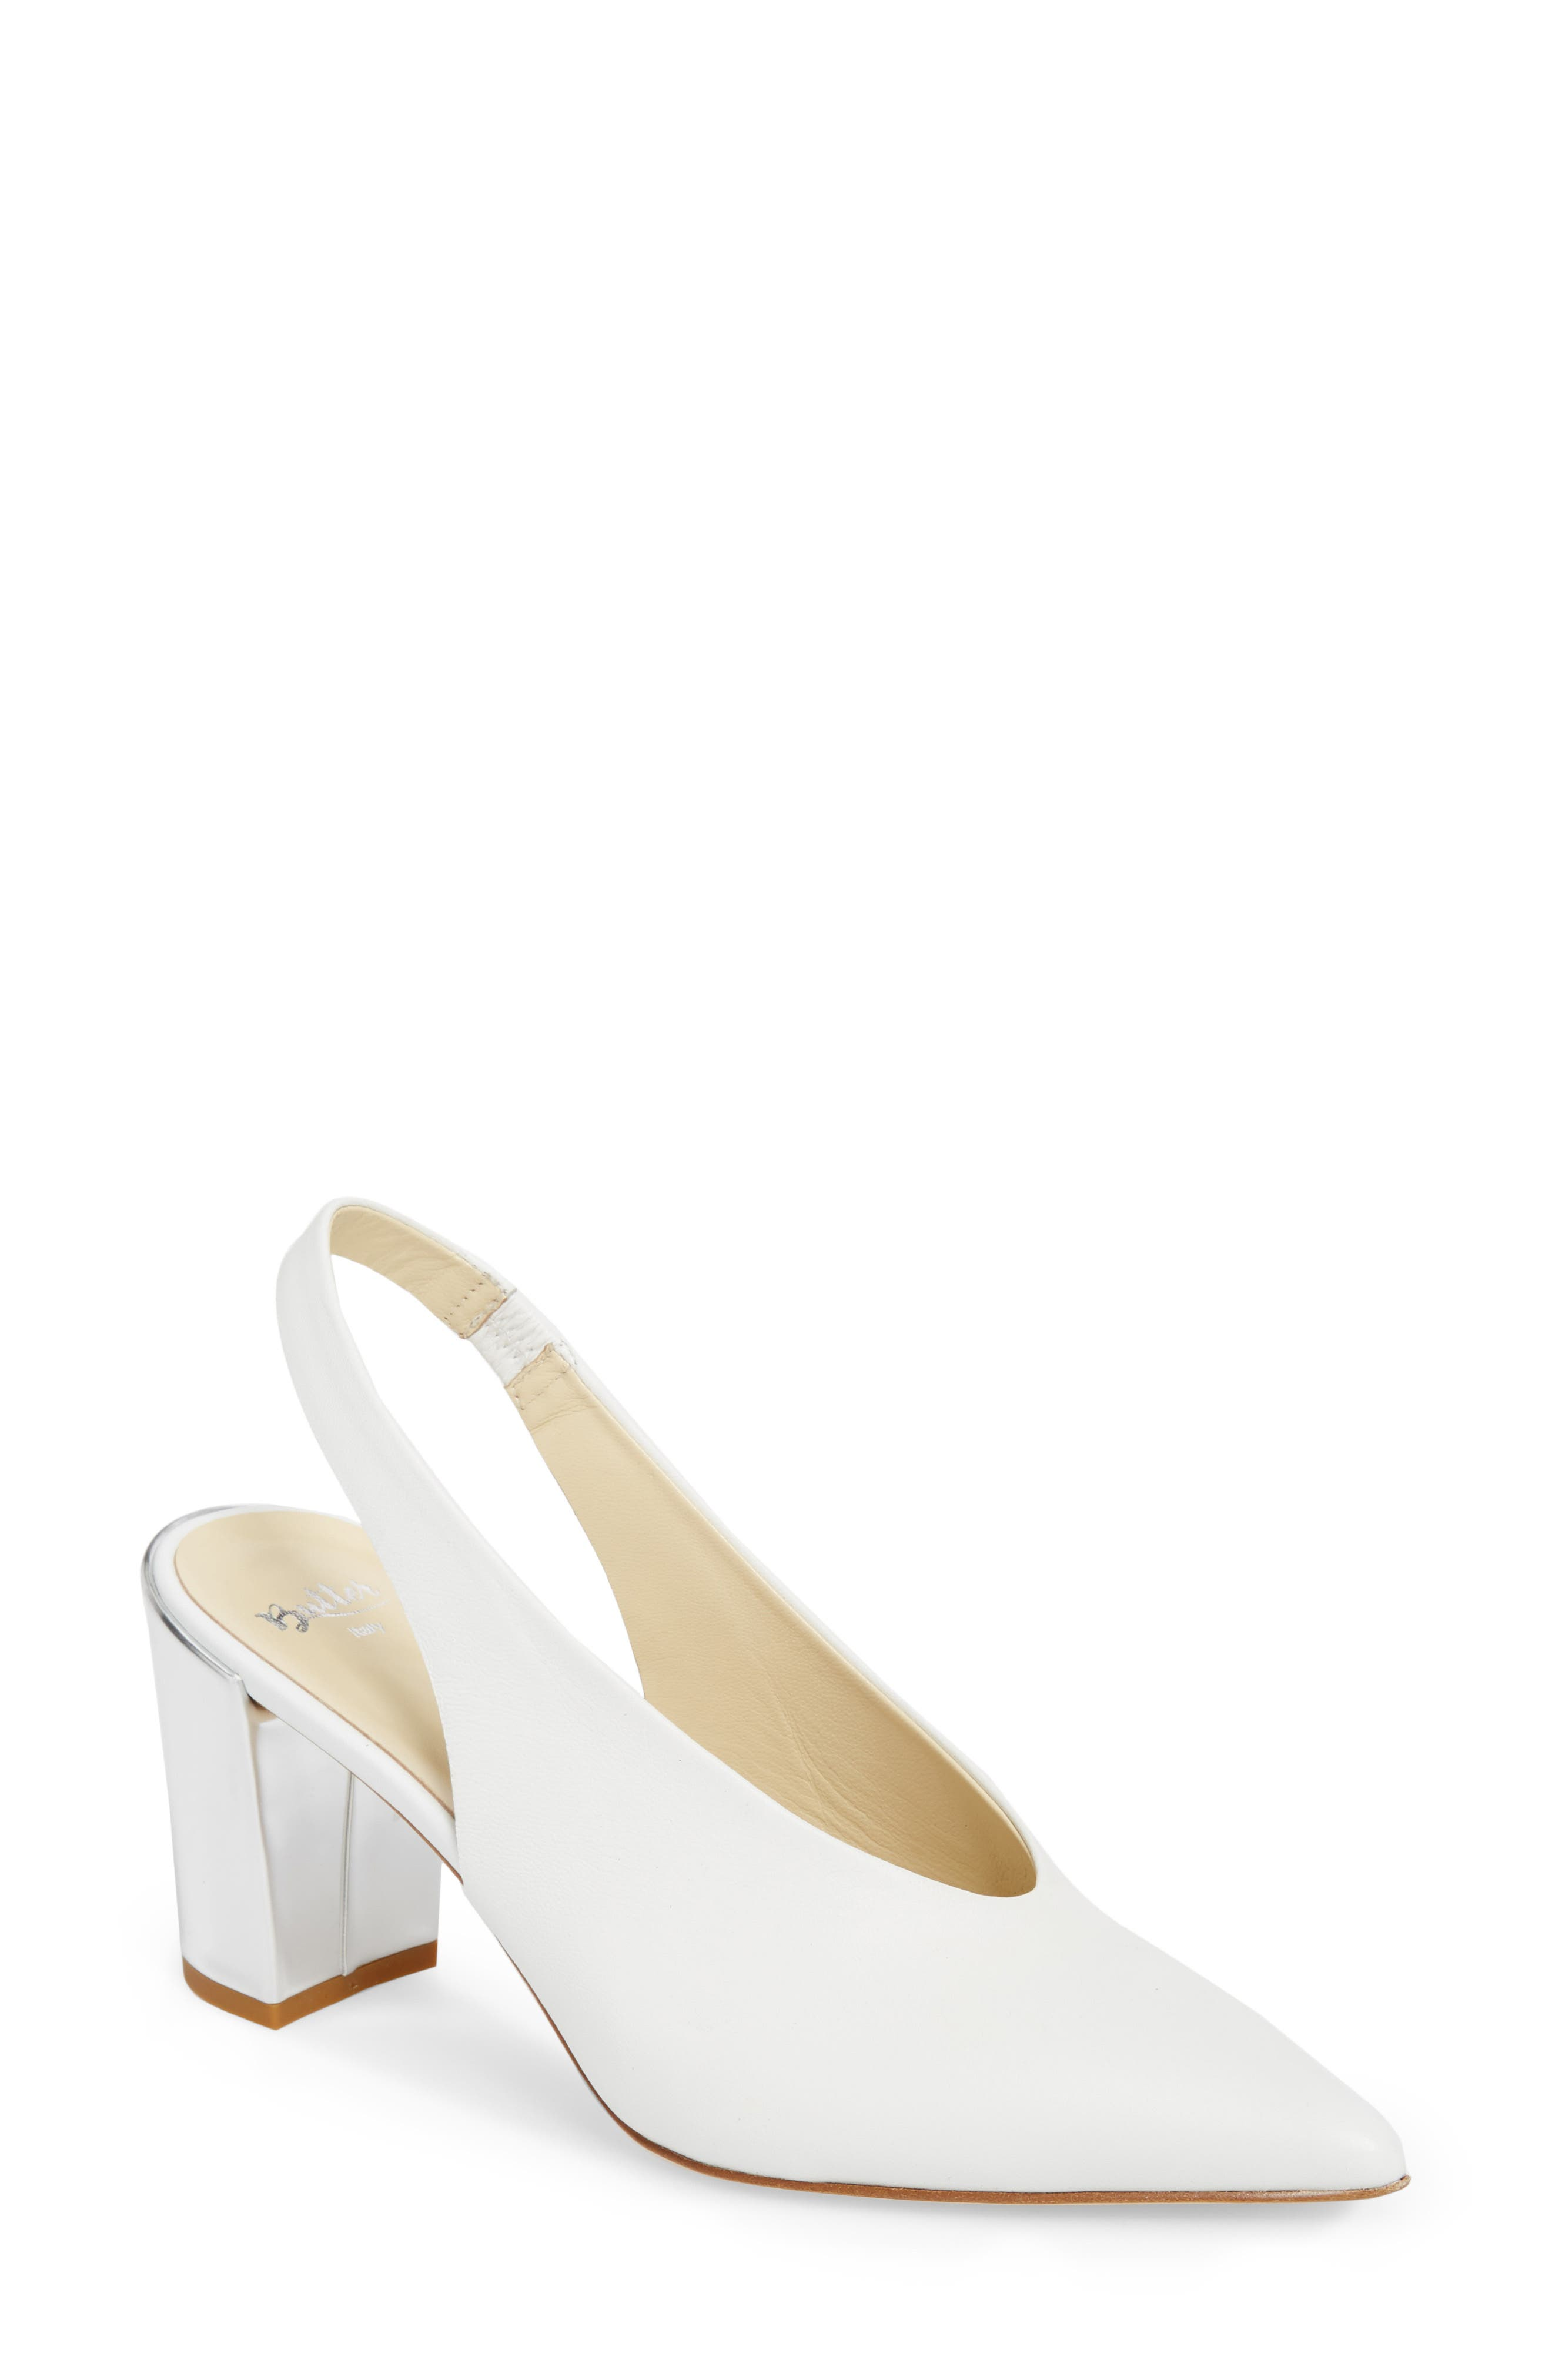 Butter Kendell Slingback Pump,                         Main,                         color, White Nappa